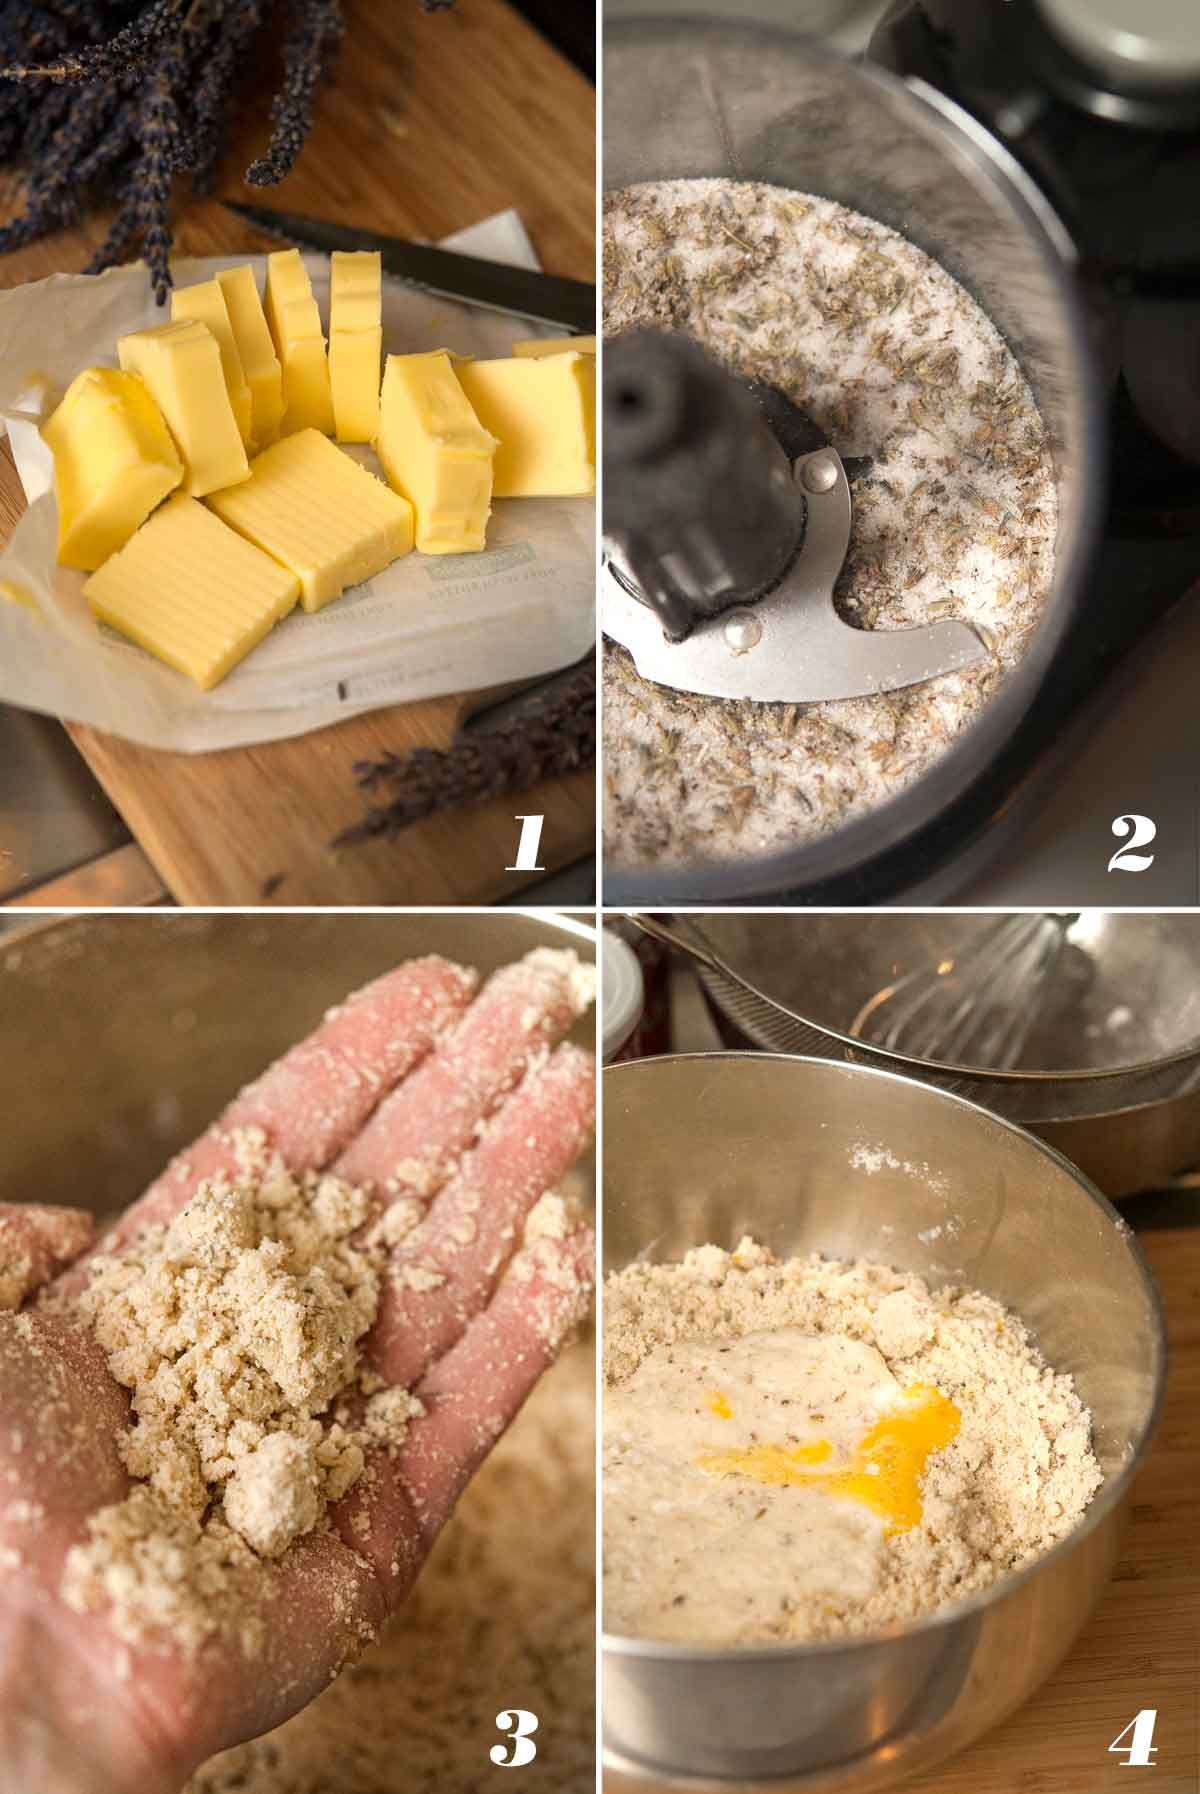 A collage of 4 numbered images showing how to make lemon lavender scones.